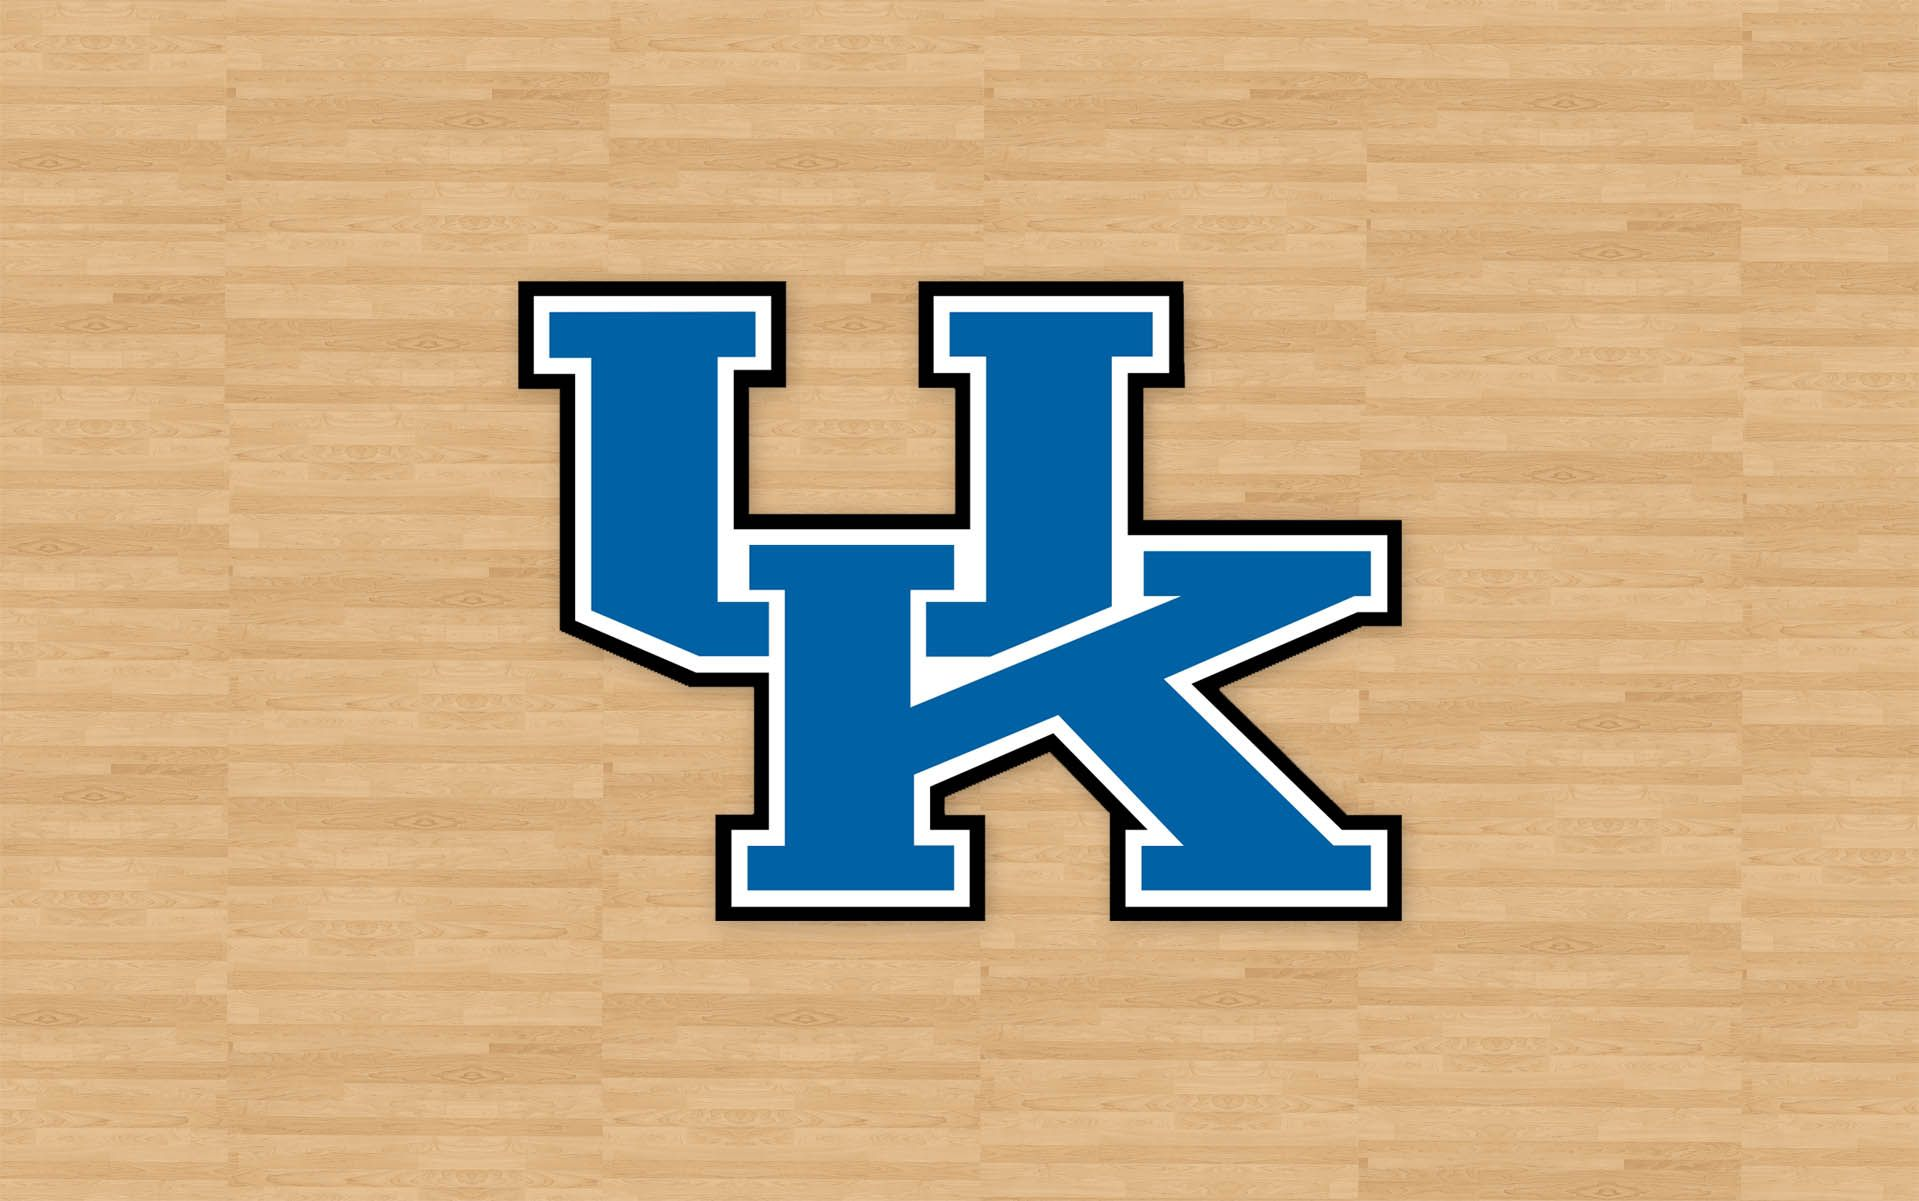 College Basketball Wallpaper For March Madness Ncaa Themes Basketball Wallpaper Kentucky Basketball Kentucky Wildcats Logo